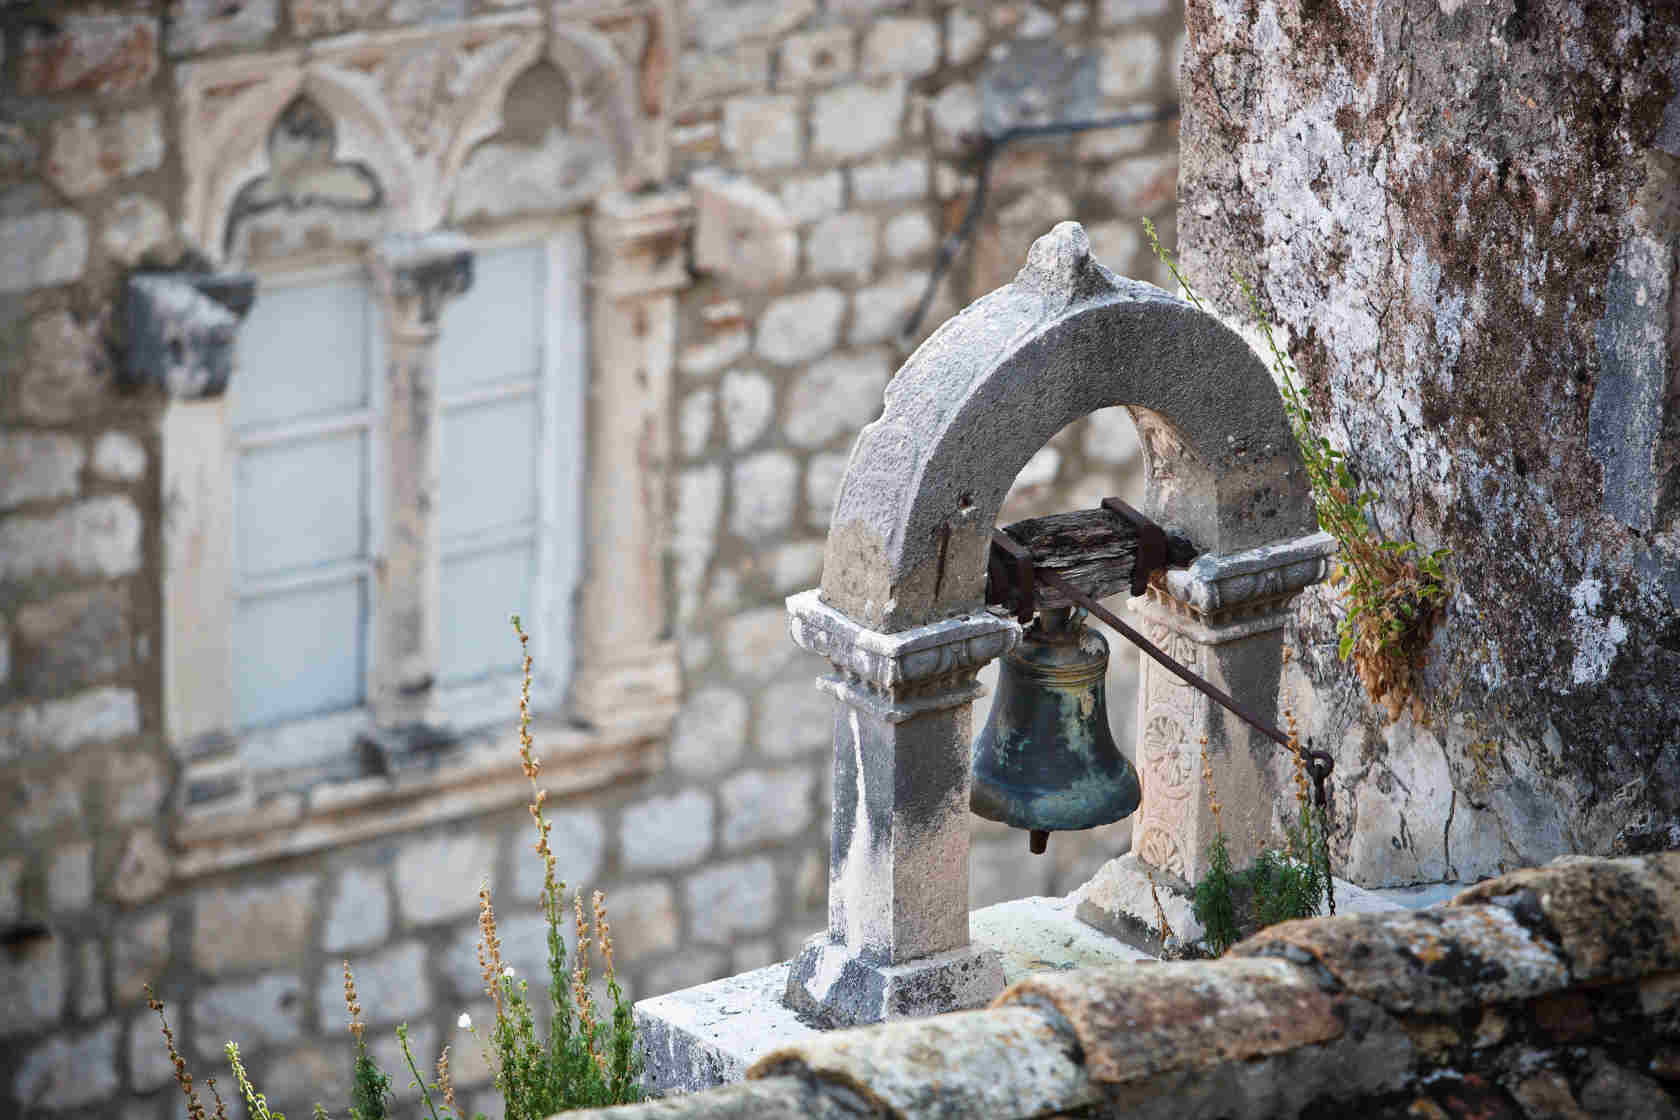 Discover dubrovnik old town guided walking tour - Discover Dubrovnik Old Town Guided Walking Tour 31